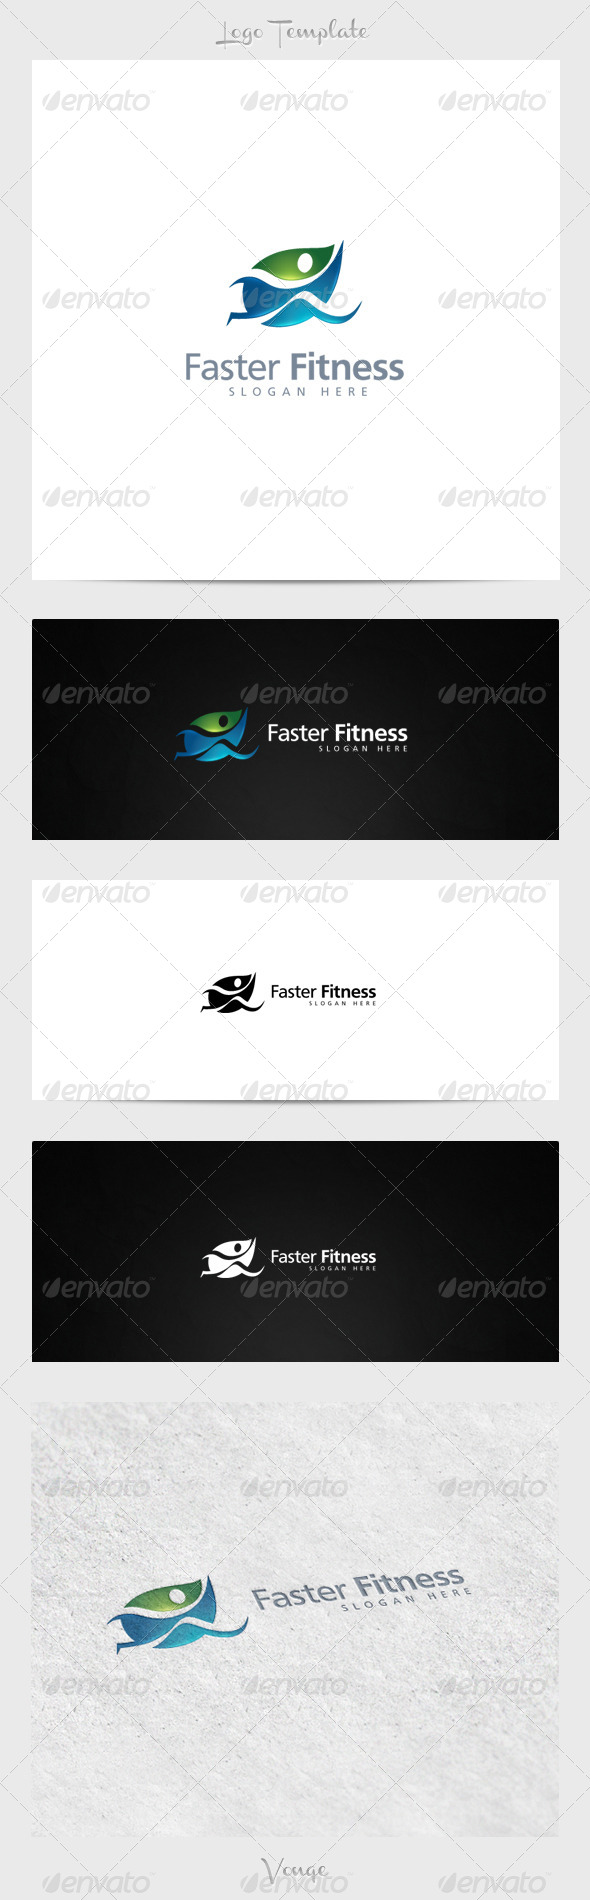 Faster Fitness - Nature Logo Templates